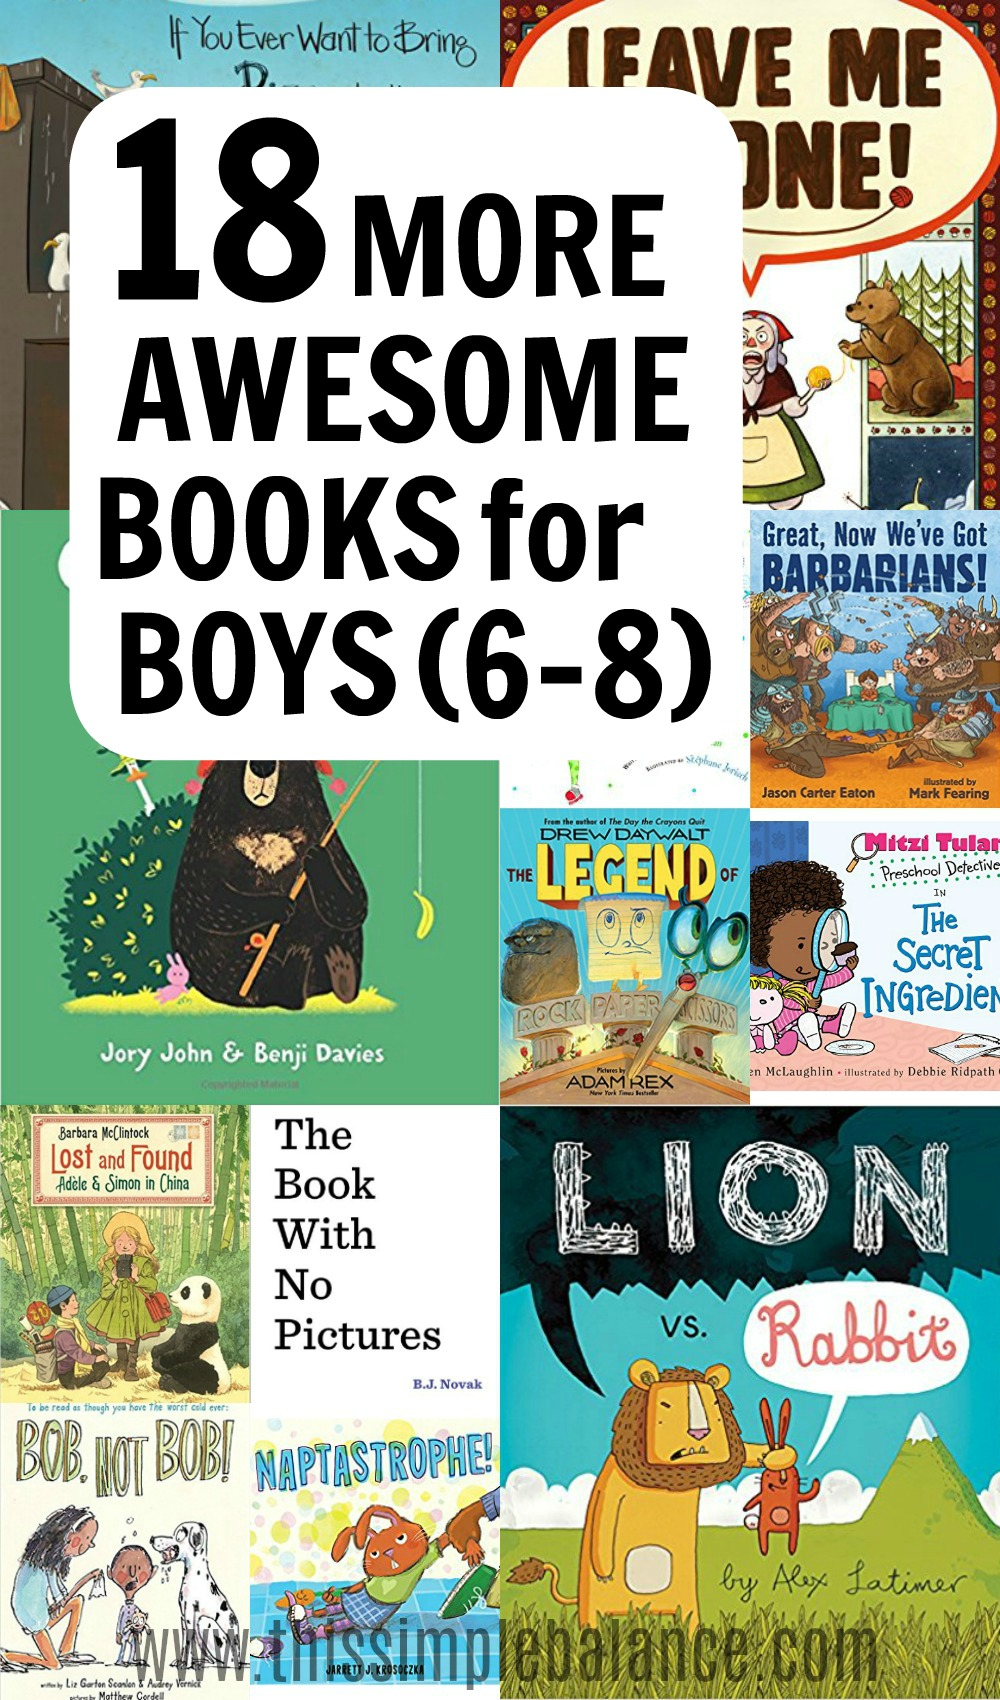 These 18 fun, awesome books were a hit with my boys (especially my son who is 6), but most of the books were also a hit with my daughter who is age 8. Only the best books make my lists!